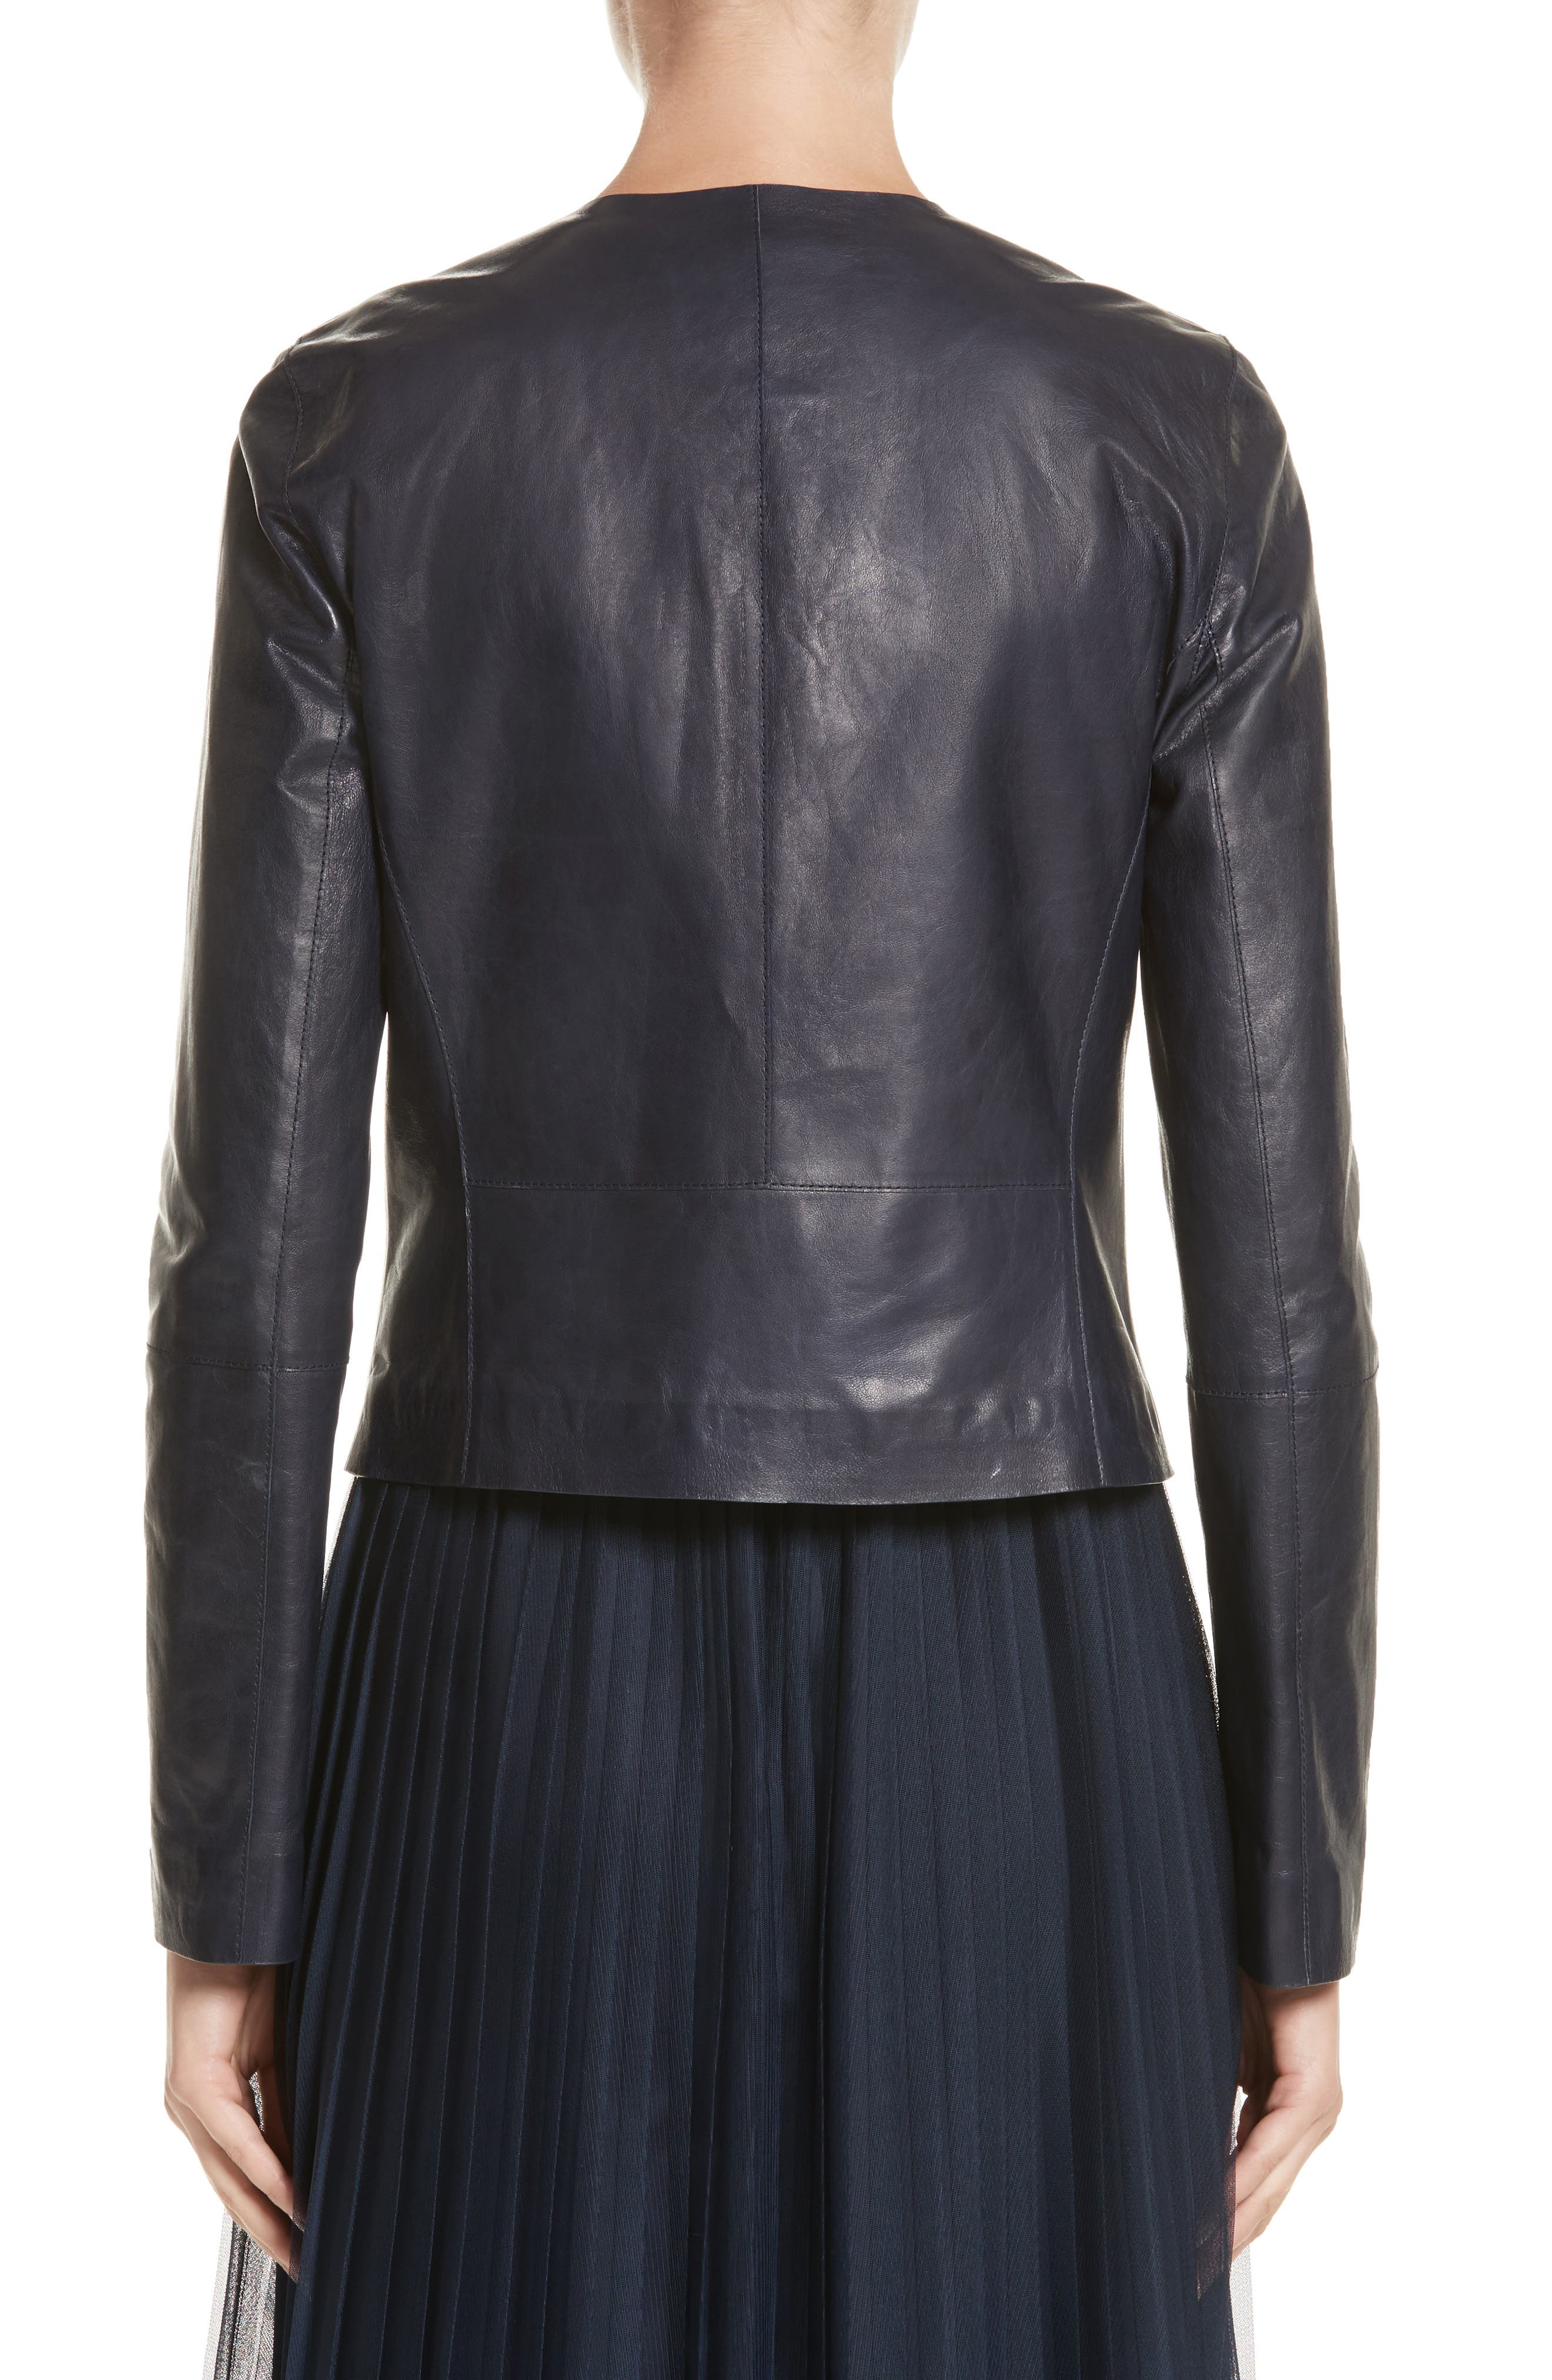 Clyde Lambskin Leather Jacket,                             Alternate thumbnail 2, color,                             479